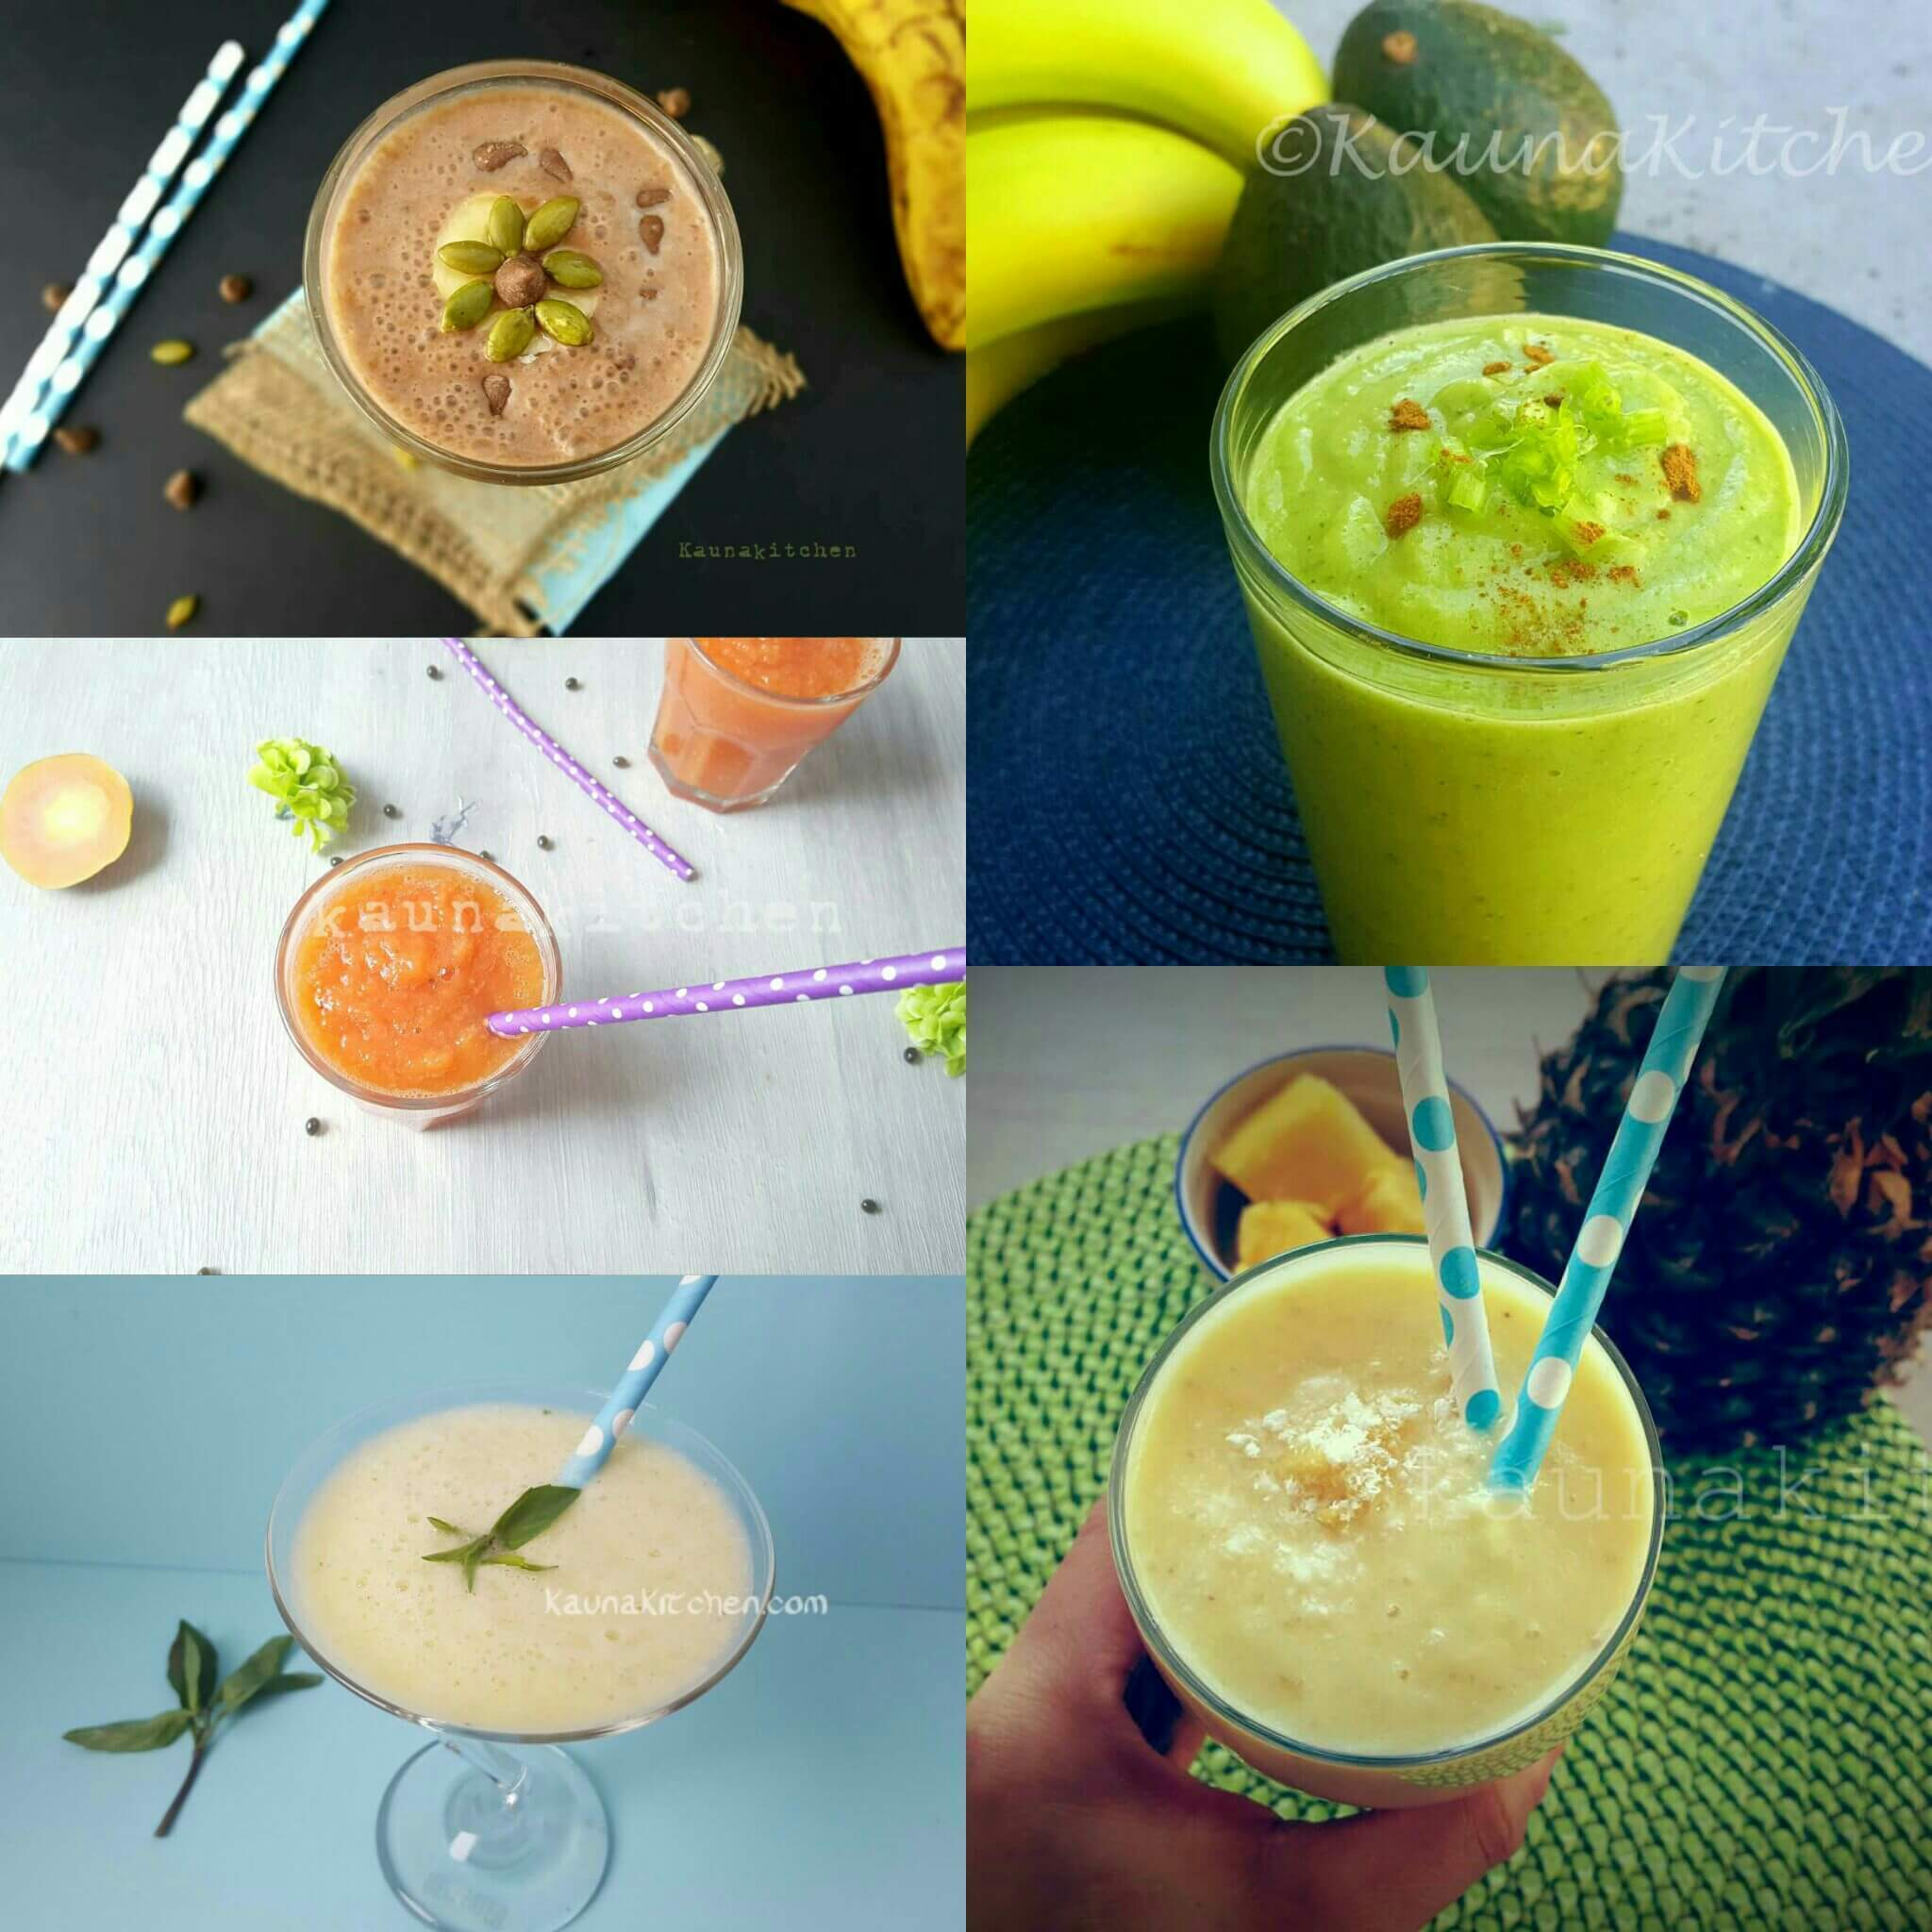 10 Smoothies Every Nigerian Should Make